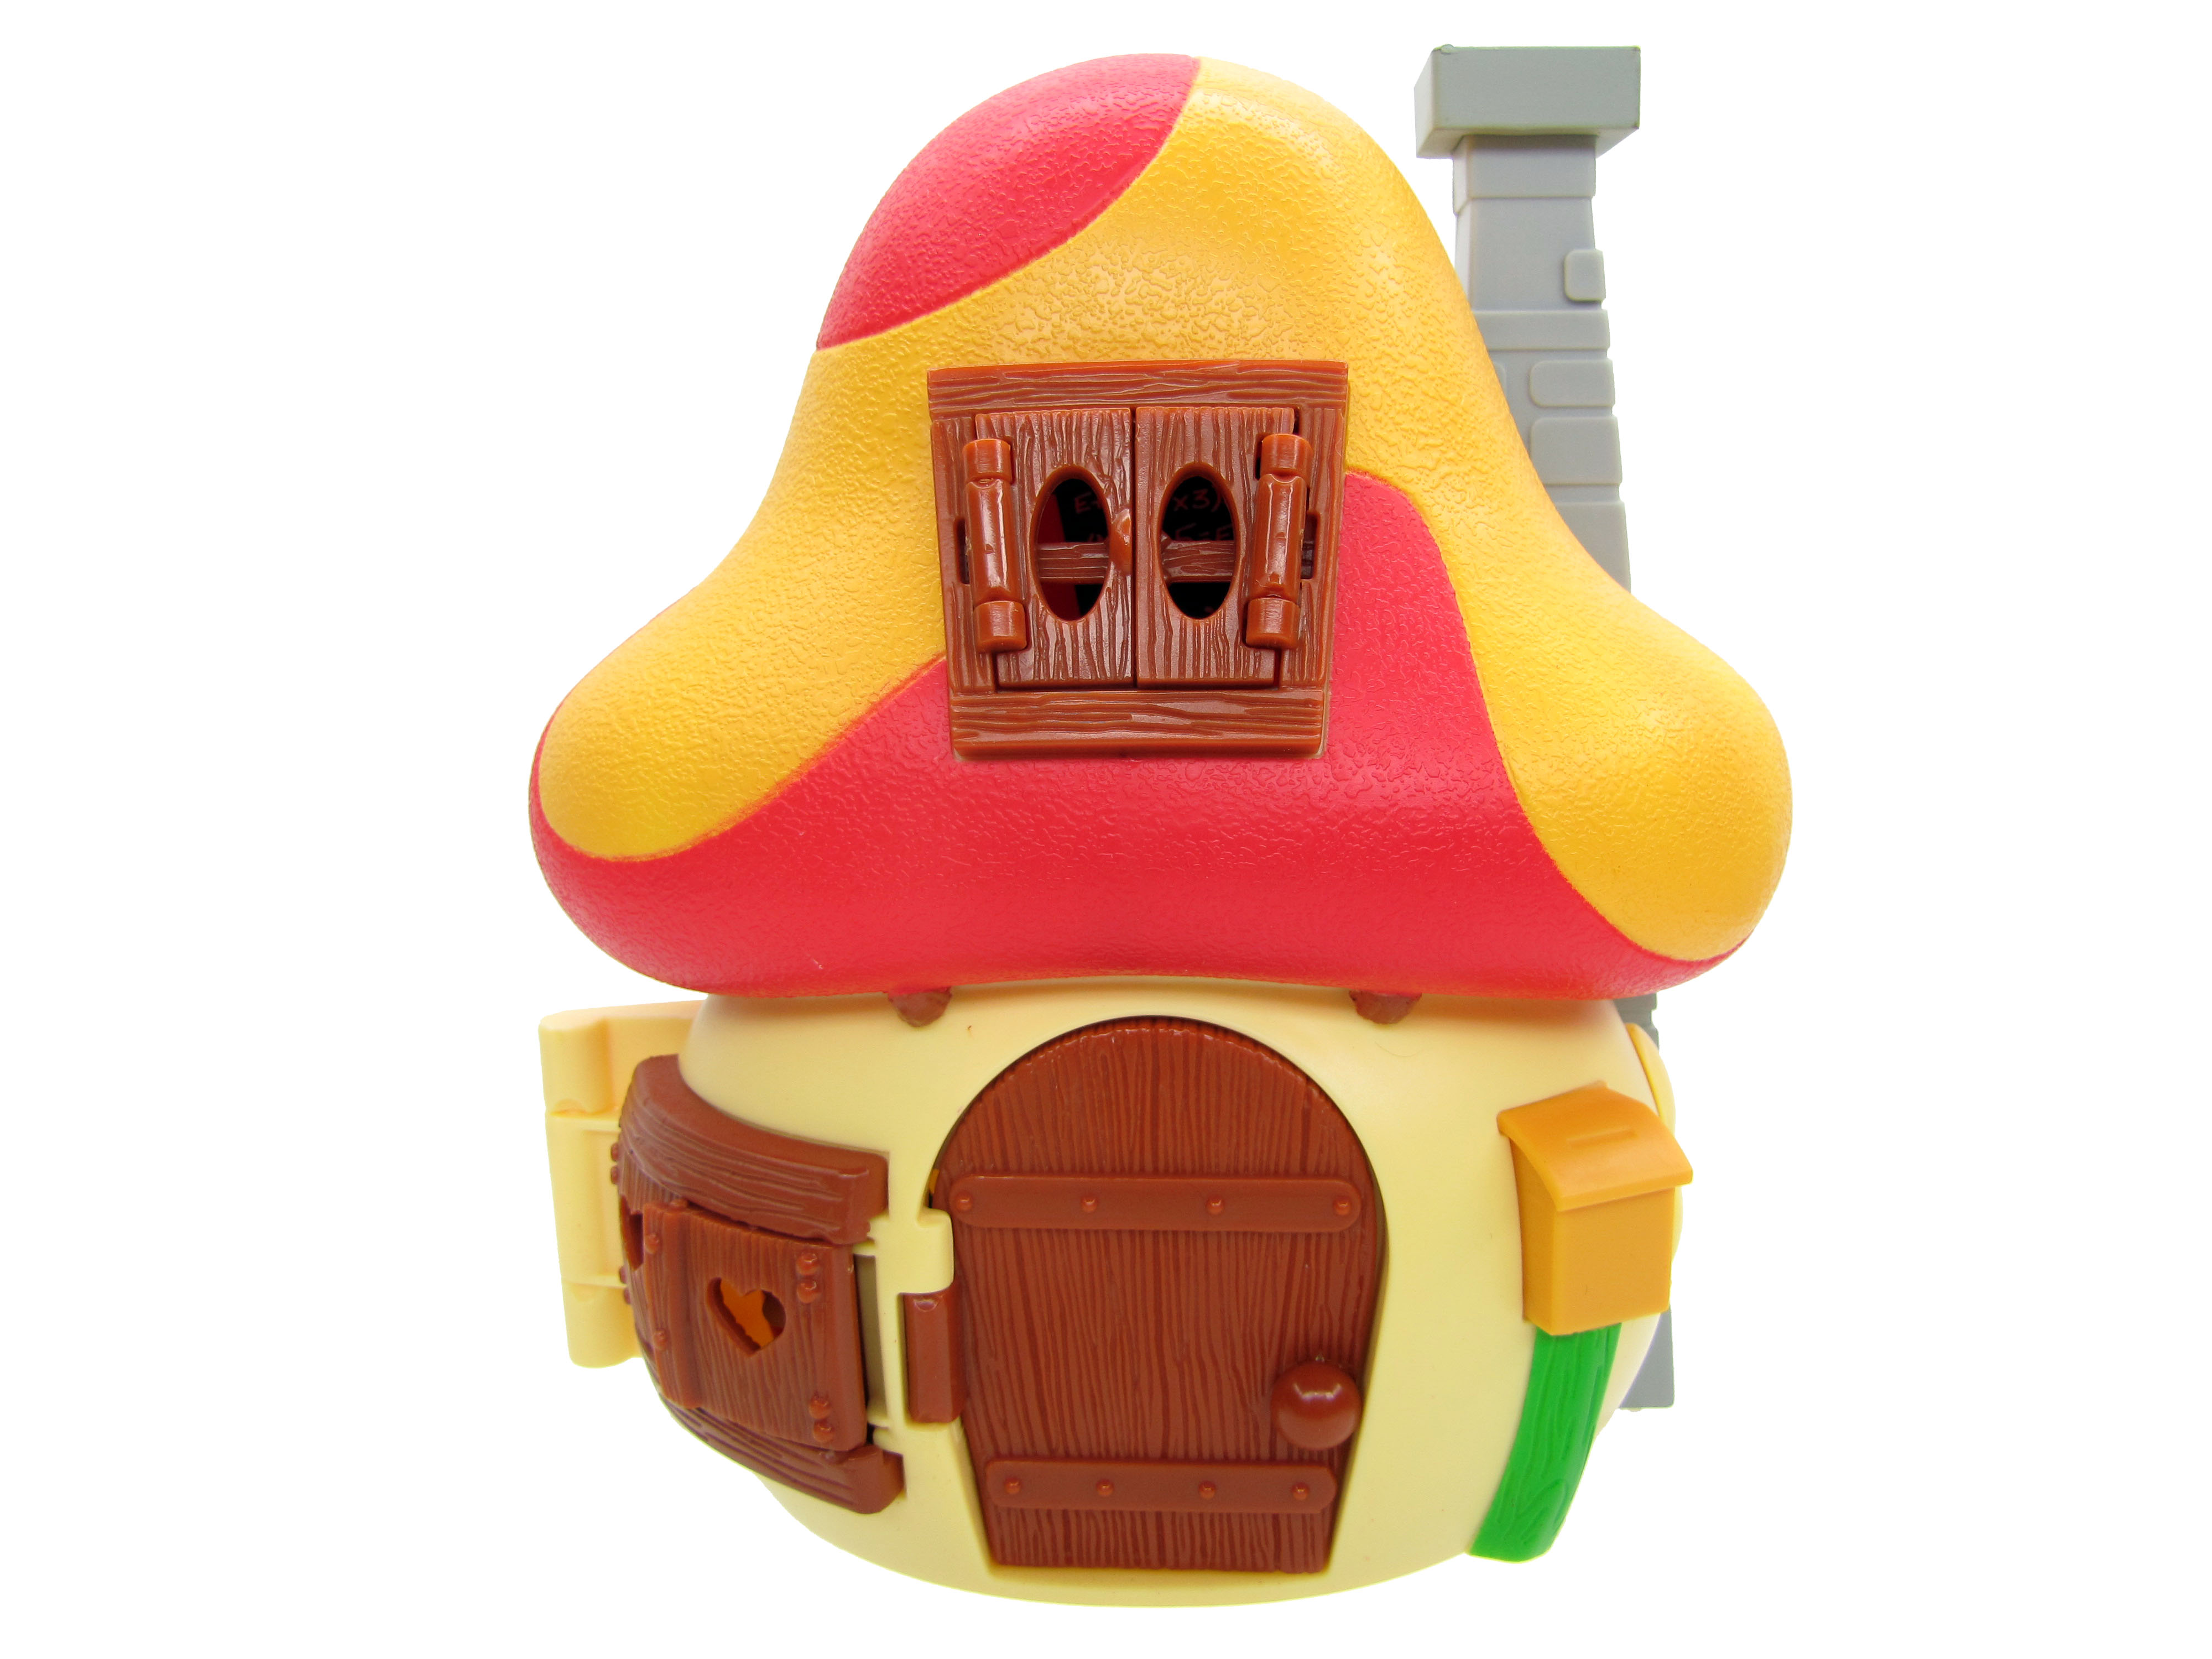 2008 The Smurfs Papa Smurf's Mushroom House Playset Complete